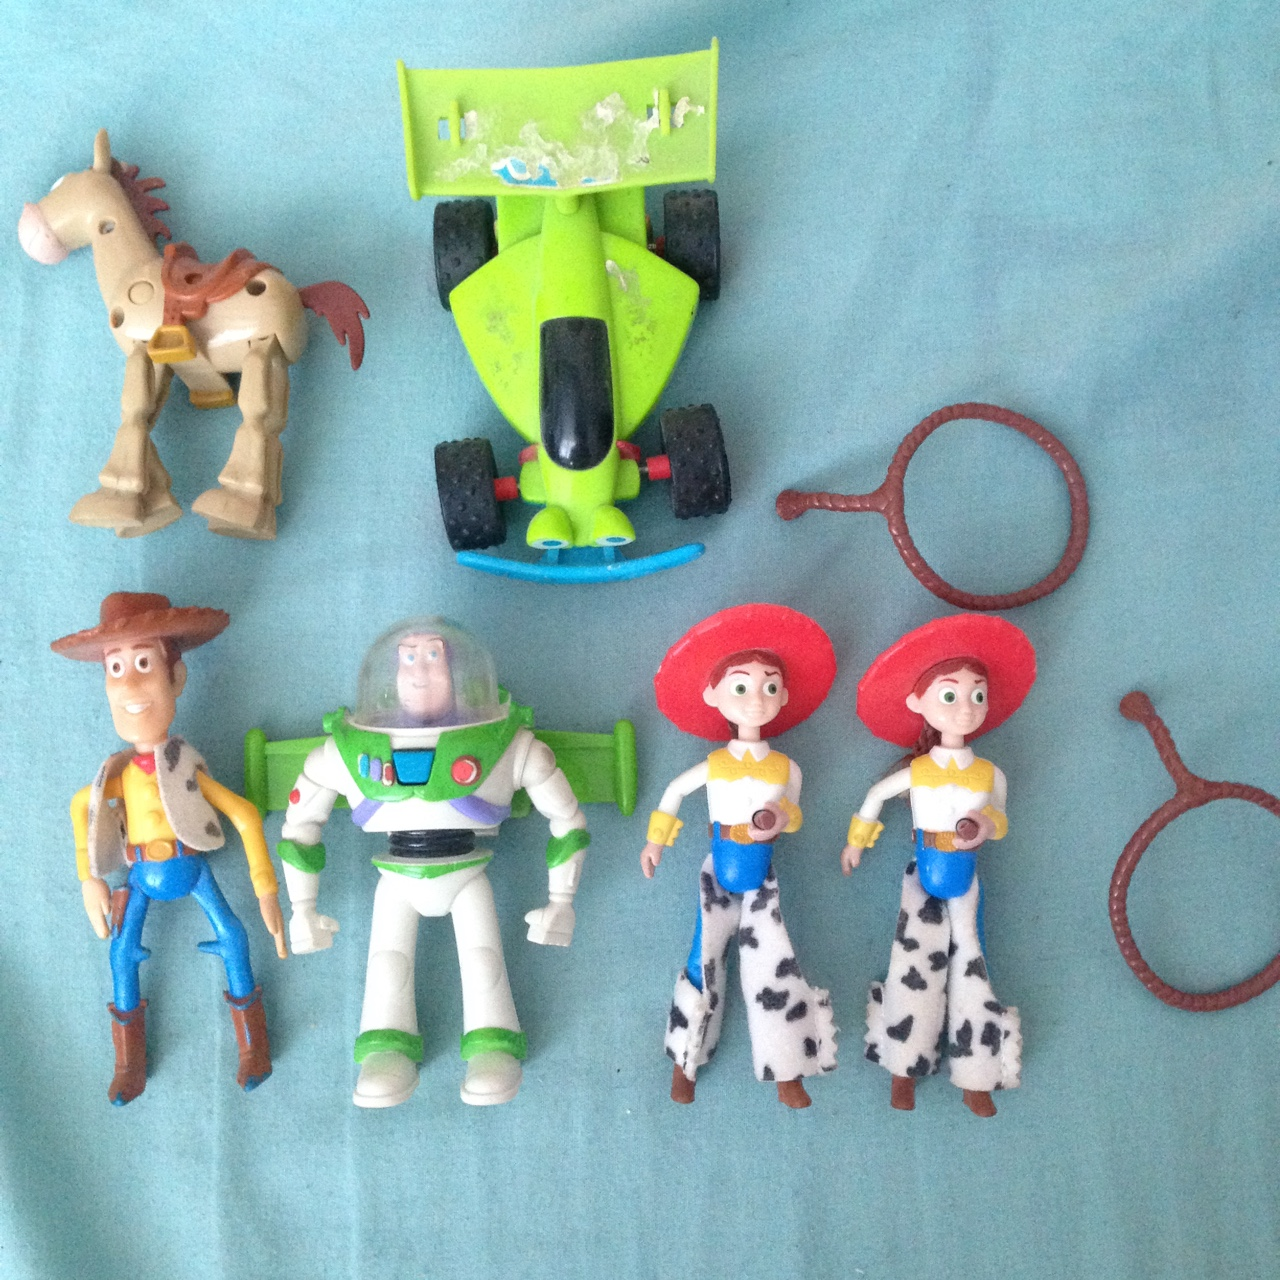 Toy Story Toys Vintage Part 1 Of 2 Vintage Toy Story Mcdonalds Toys These Depop